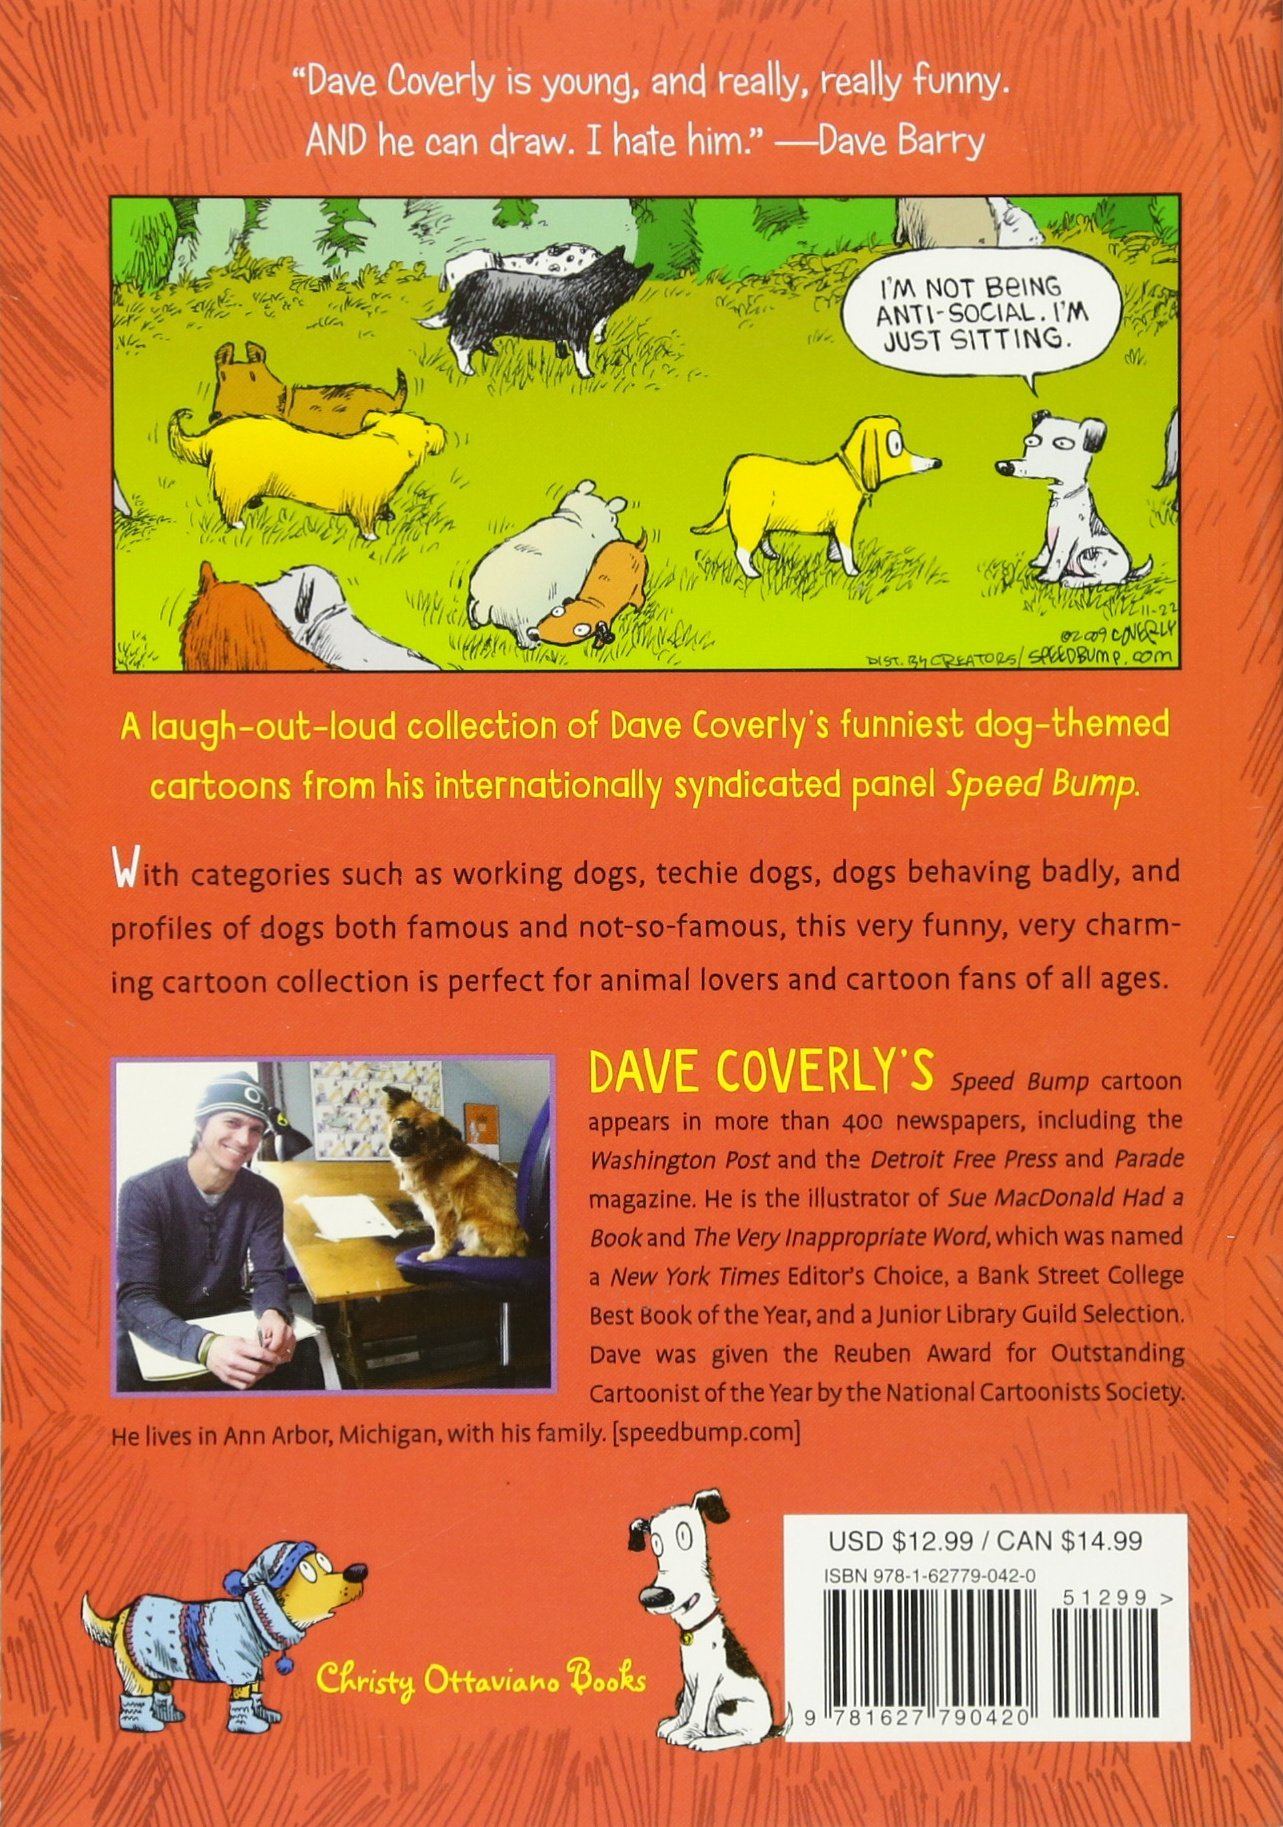 This picture of cartoon cows there s a dog hiding can you find it - Dogs Are People Too A Collection Of Cartoons To Make Your Tail Wag Dave Coverly 9781627790420 Amazon Com Books